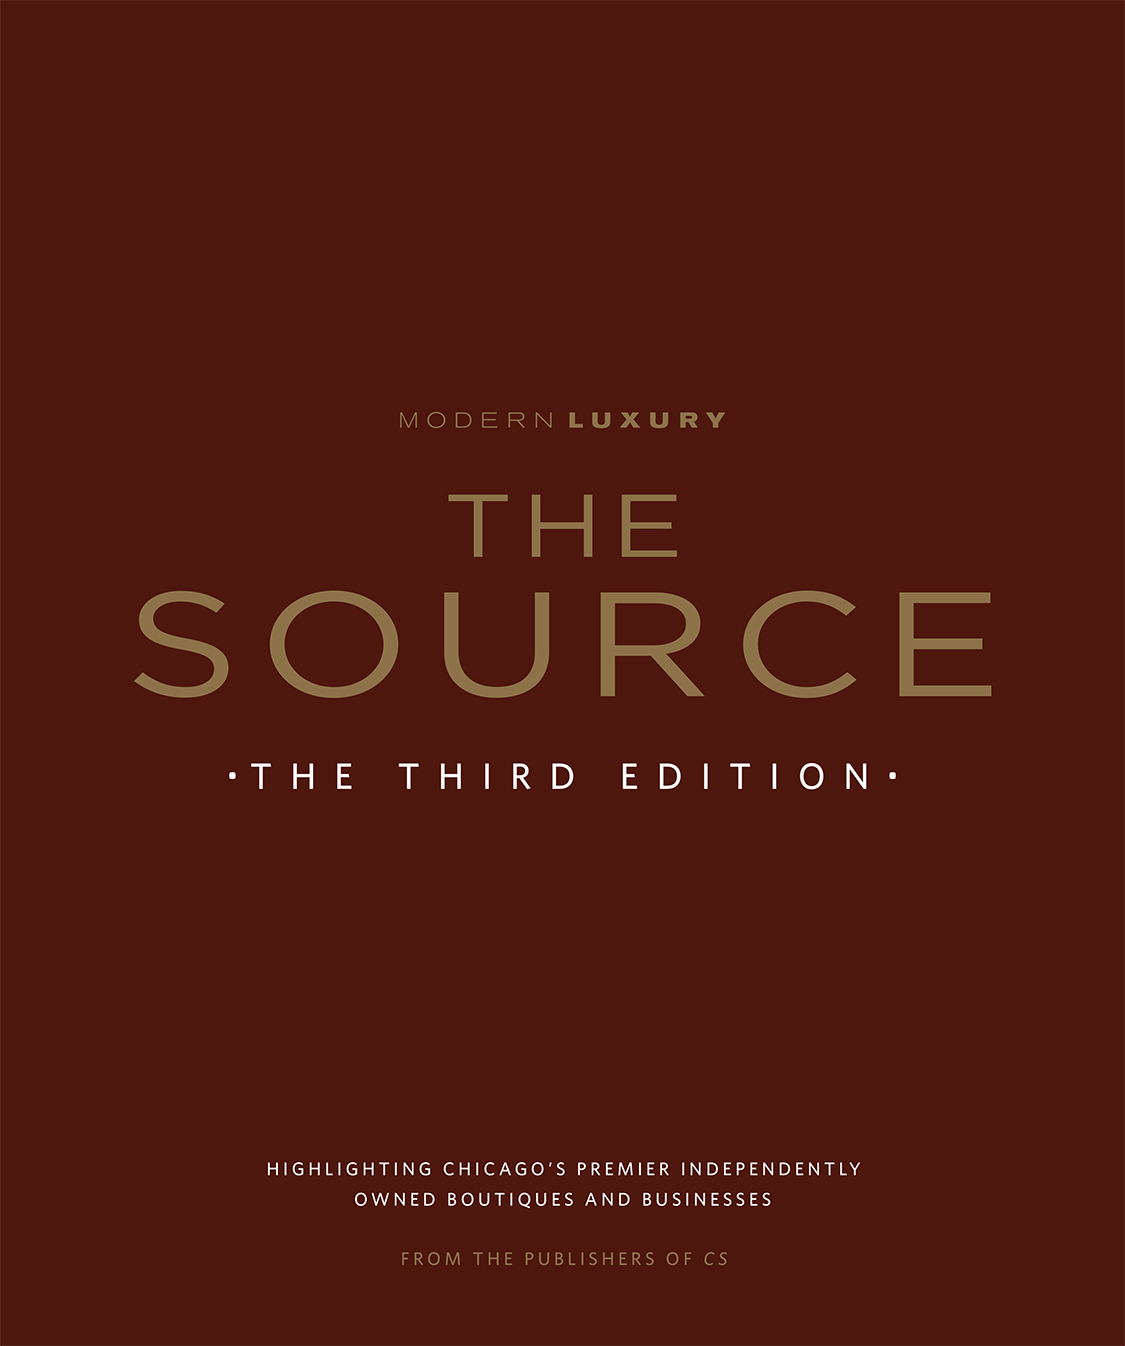 CS-Modern-Luxury-The-Source-2016-Cover